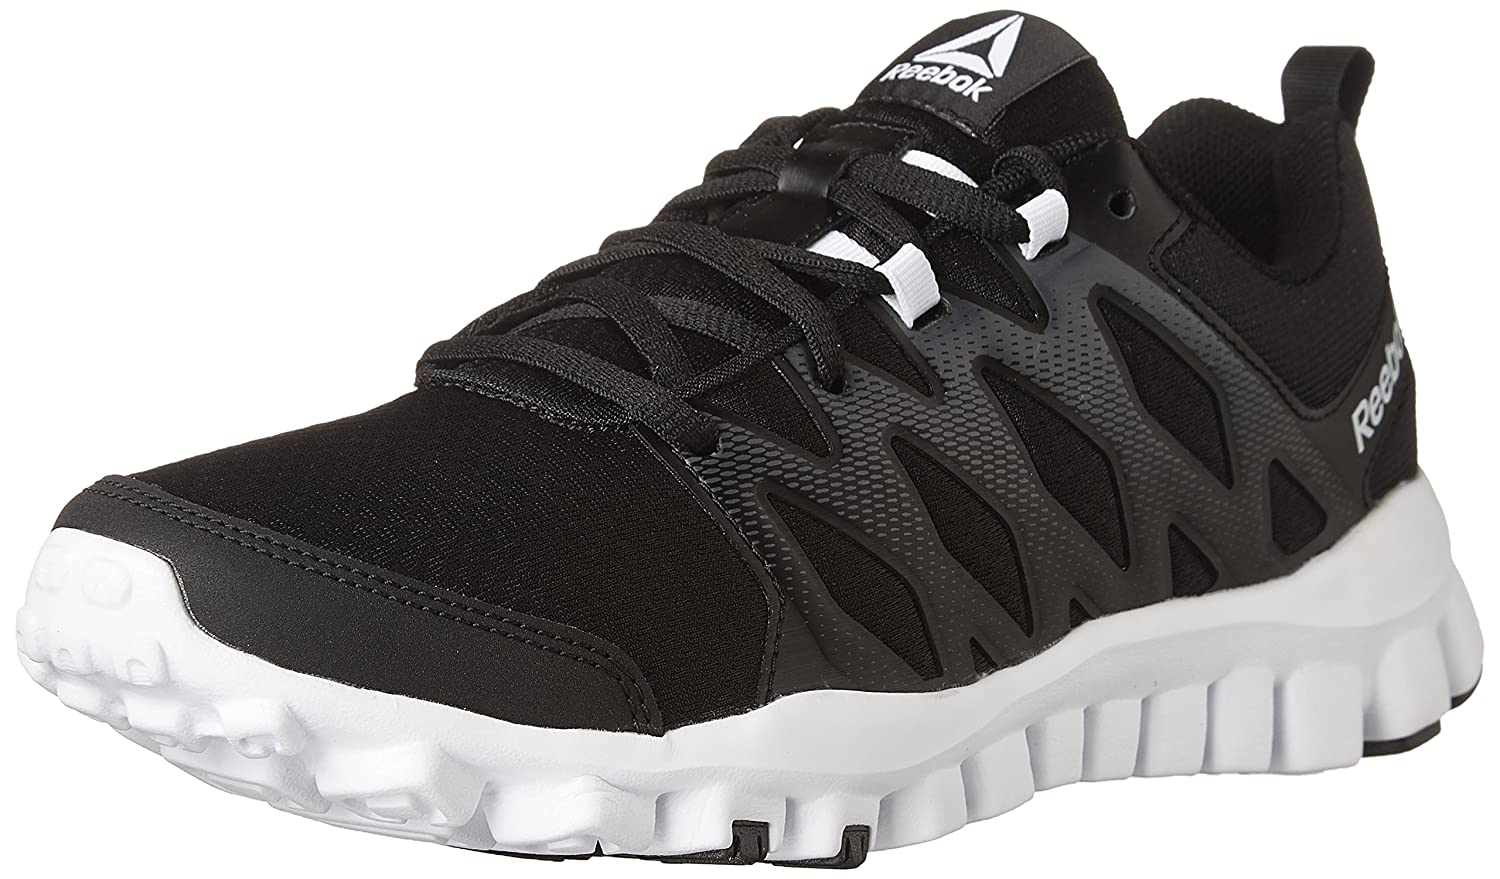 new concept a2027 4ae0f Amazon.com   Reebok Women s Realflex Train 4.0 Cross-Trainer Shoe   Shoes